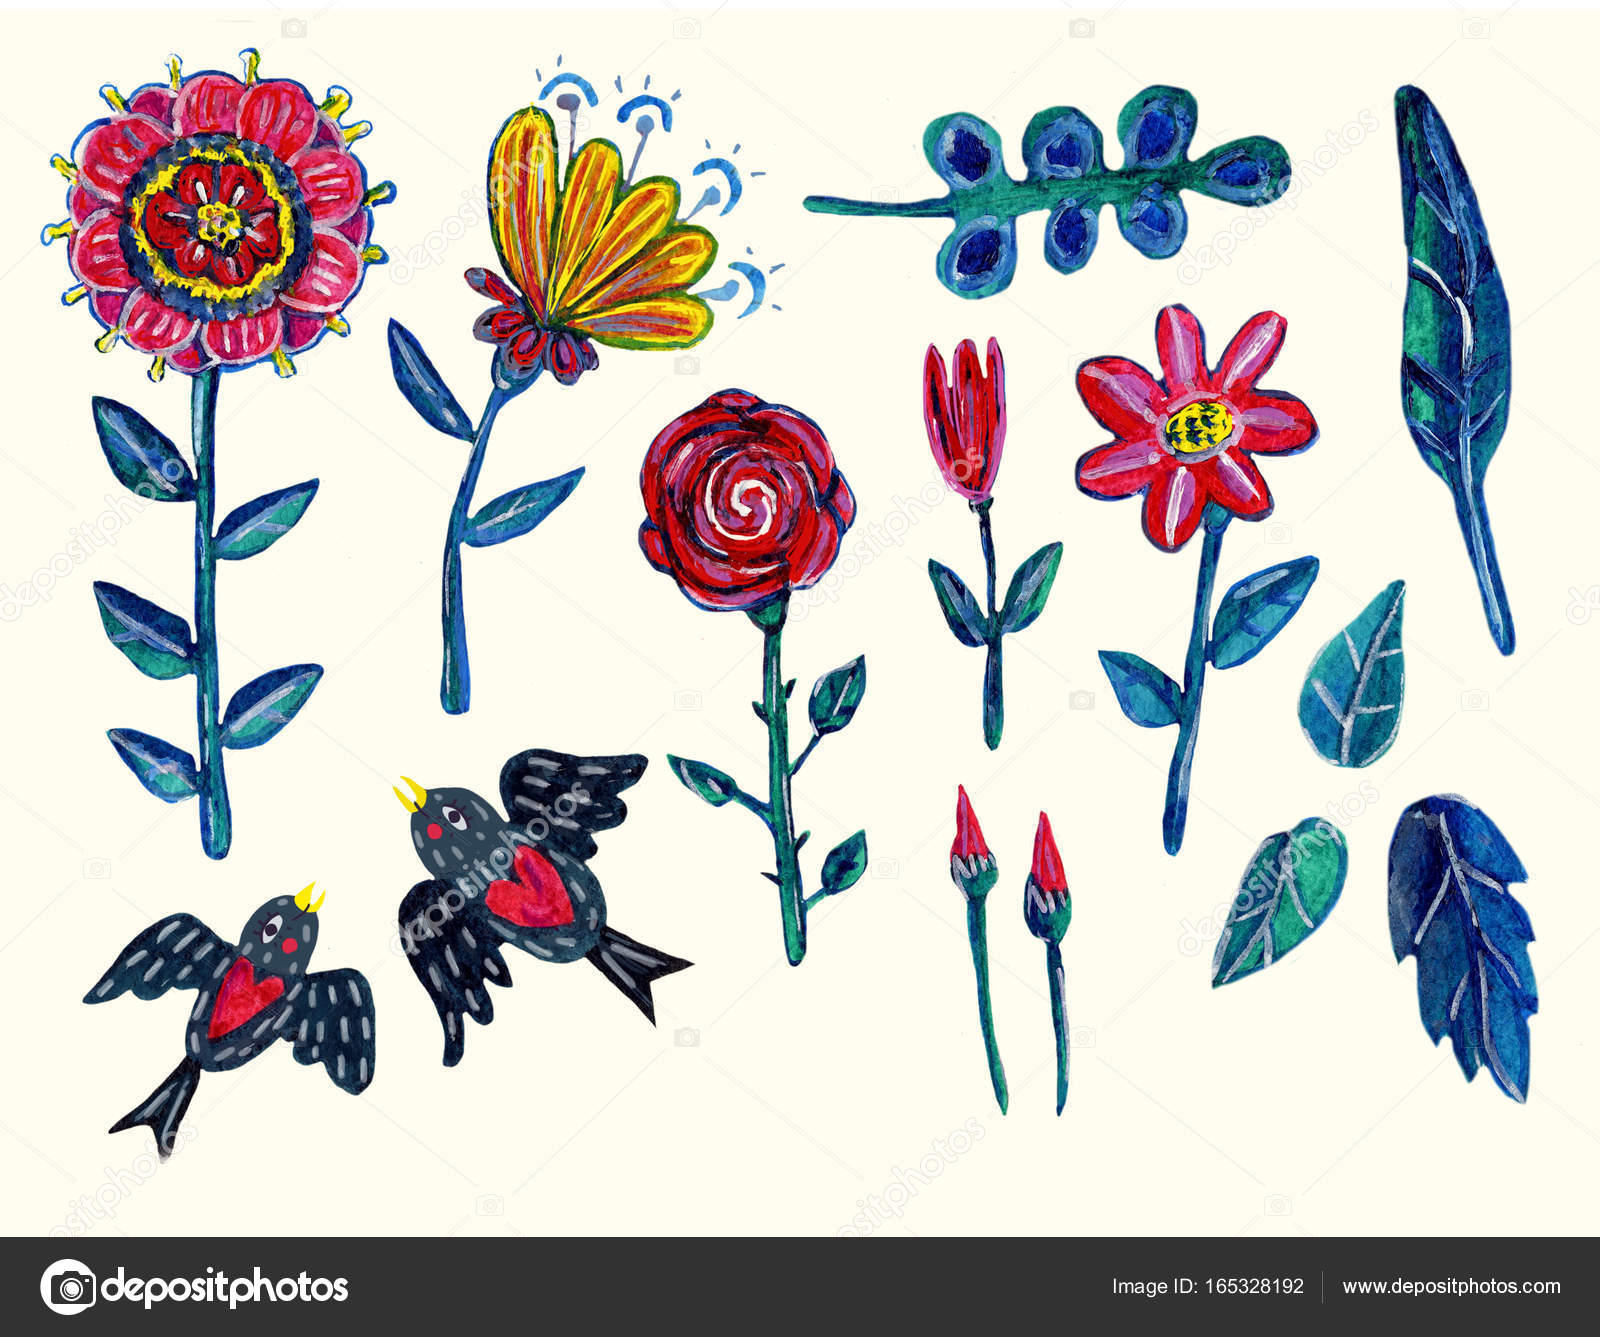 garden clipart with flowers isolated elements acrylic hand drawn illustration with some digital touches can be used for your design project decoration - Garden Clipart